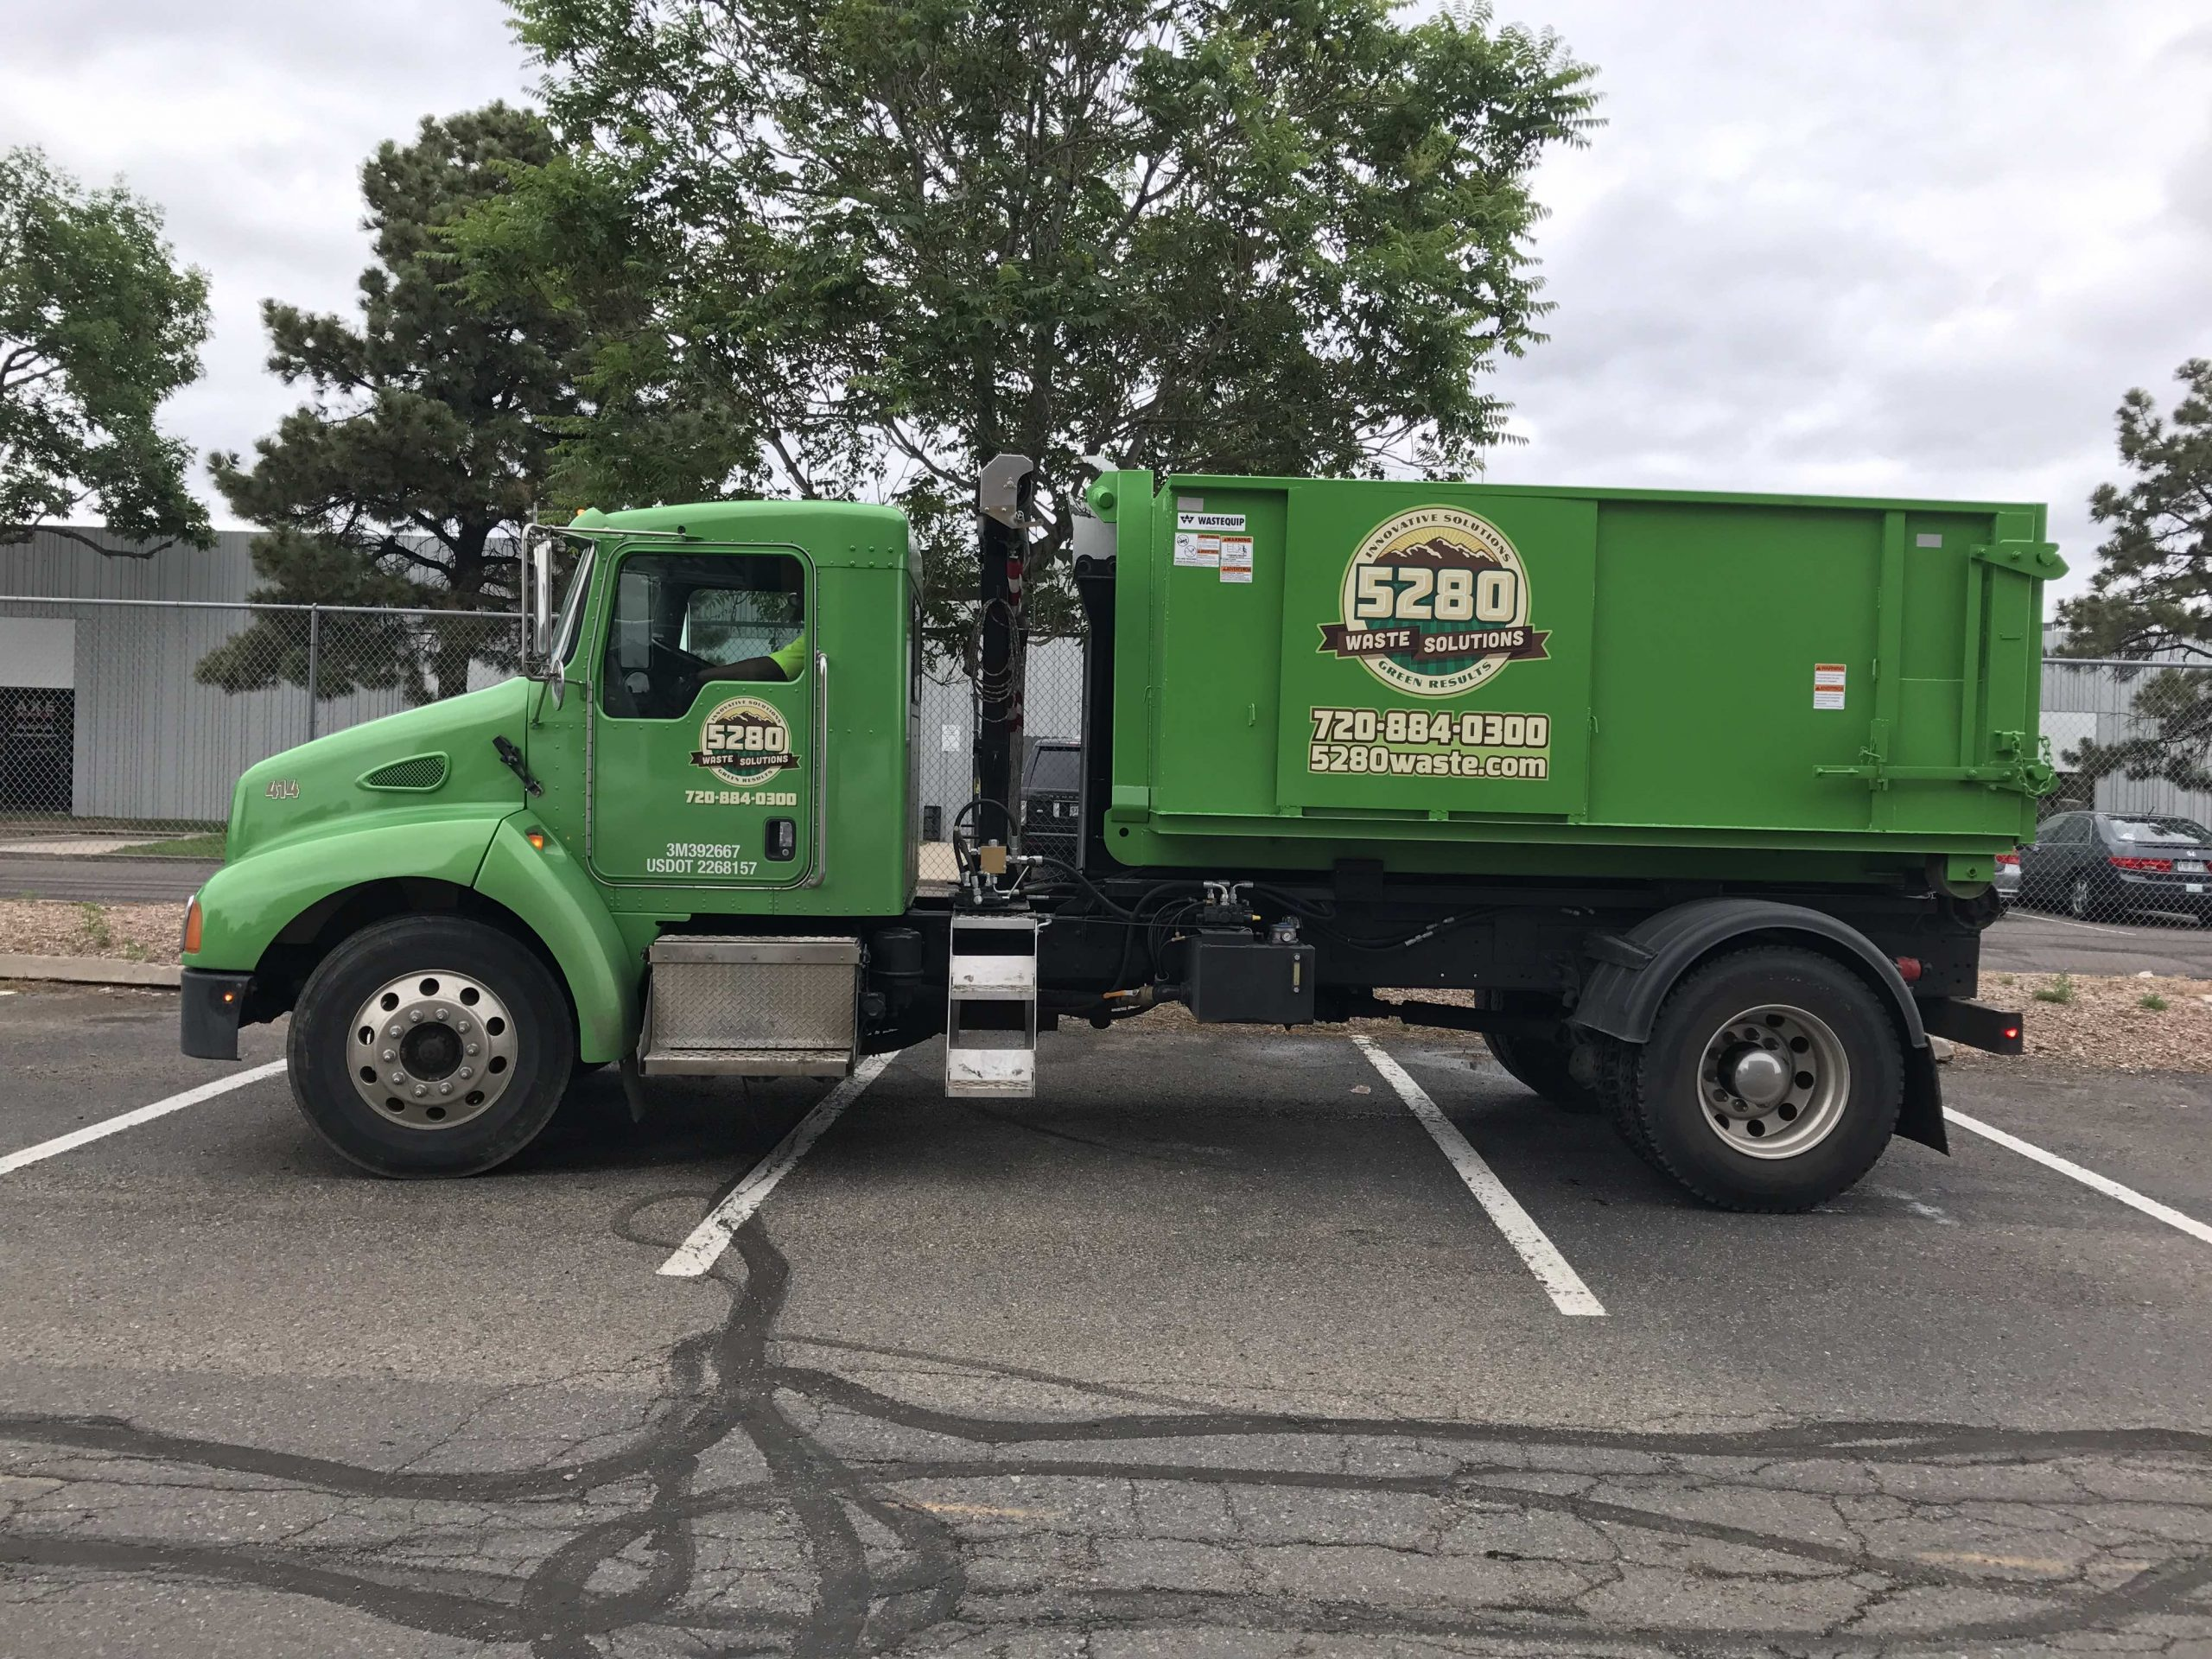 Own a roll-off business? Roll-off has traditionally been considered the back water of the waste industry. But I completely disagree.